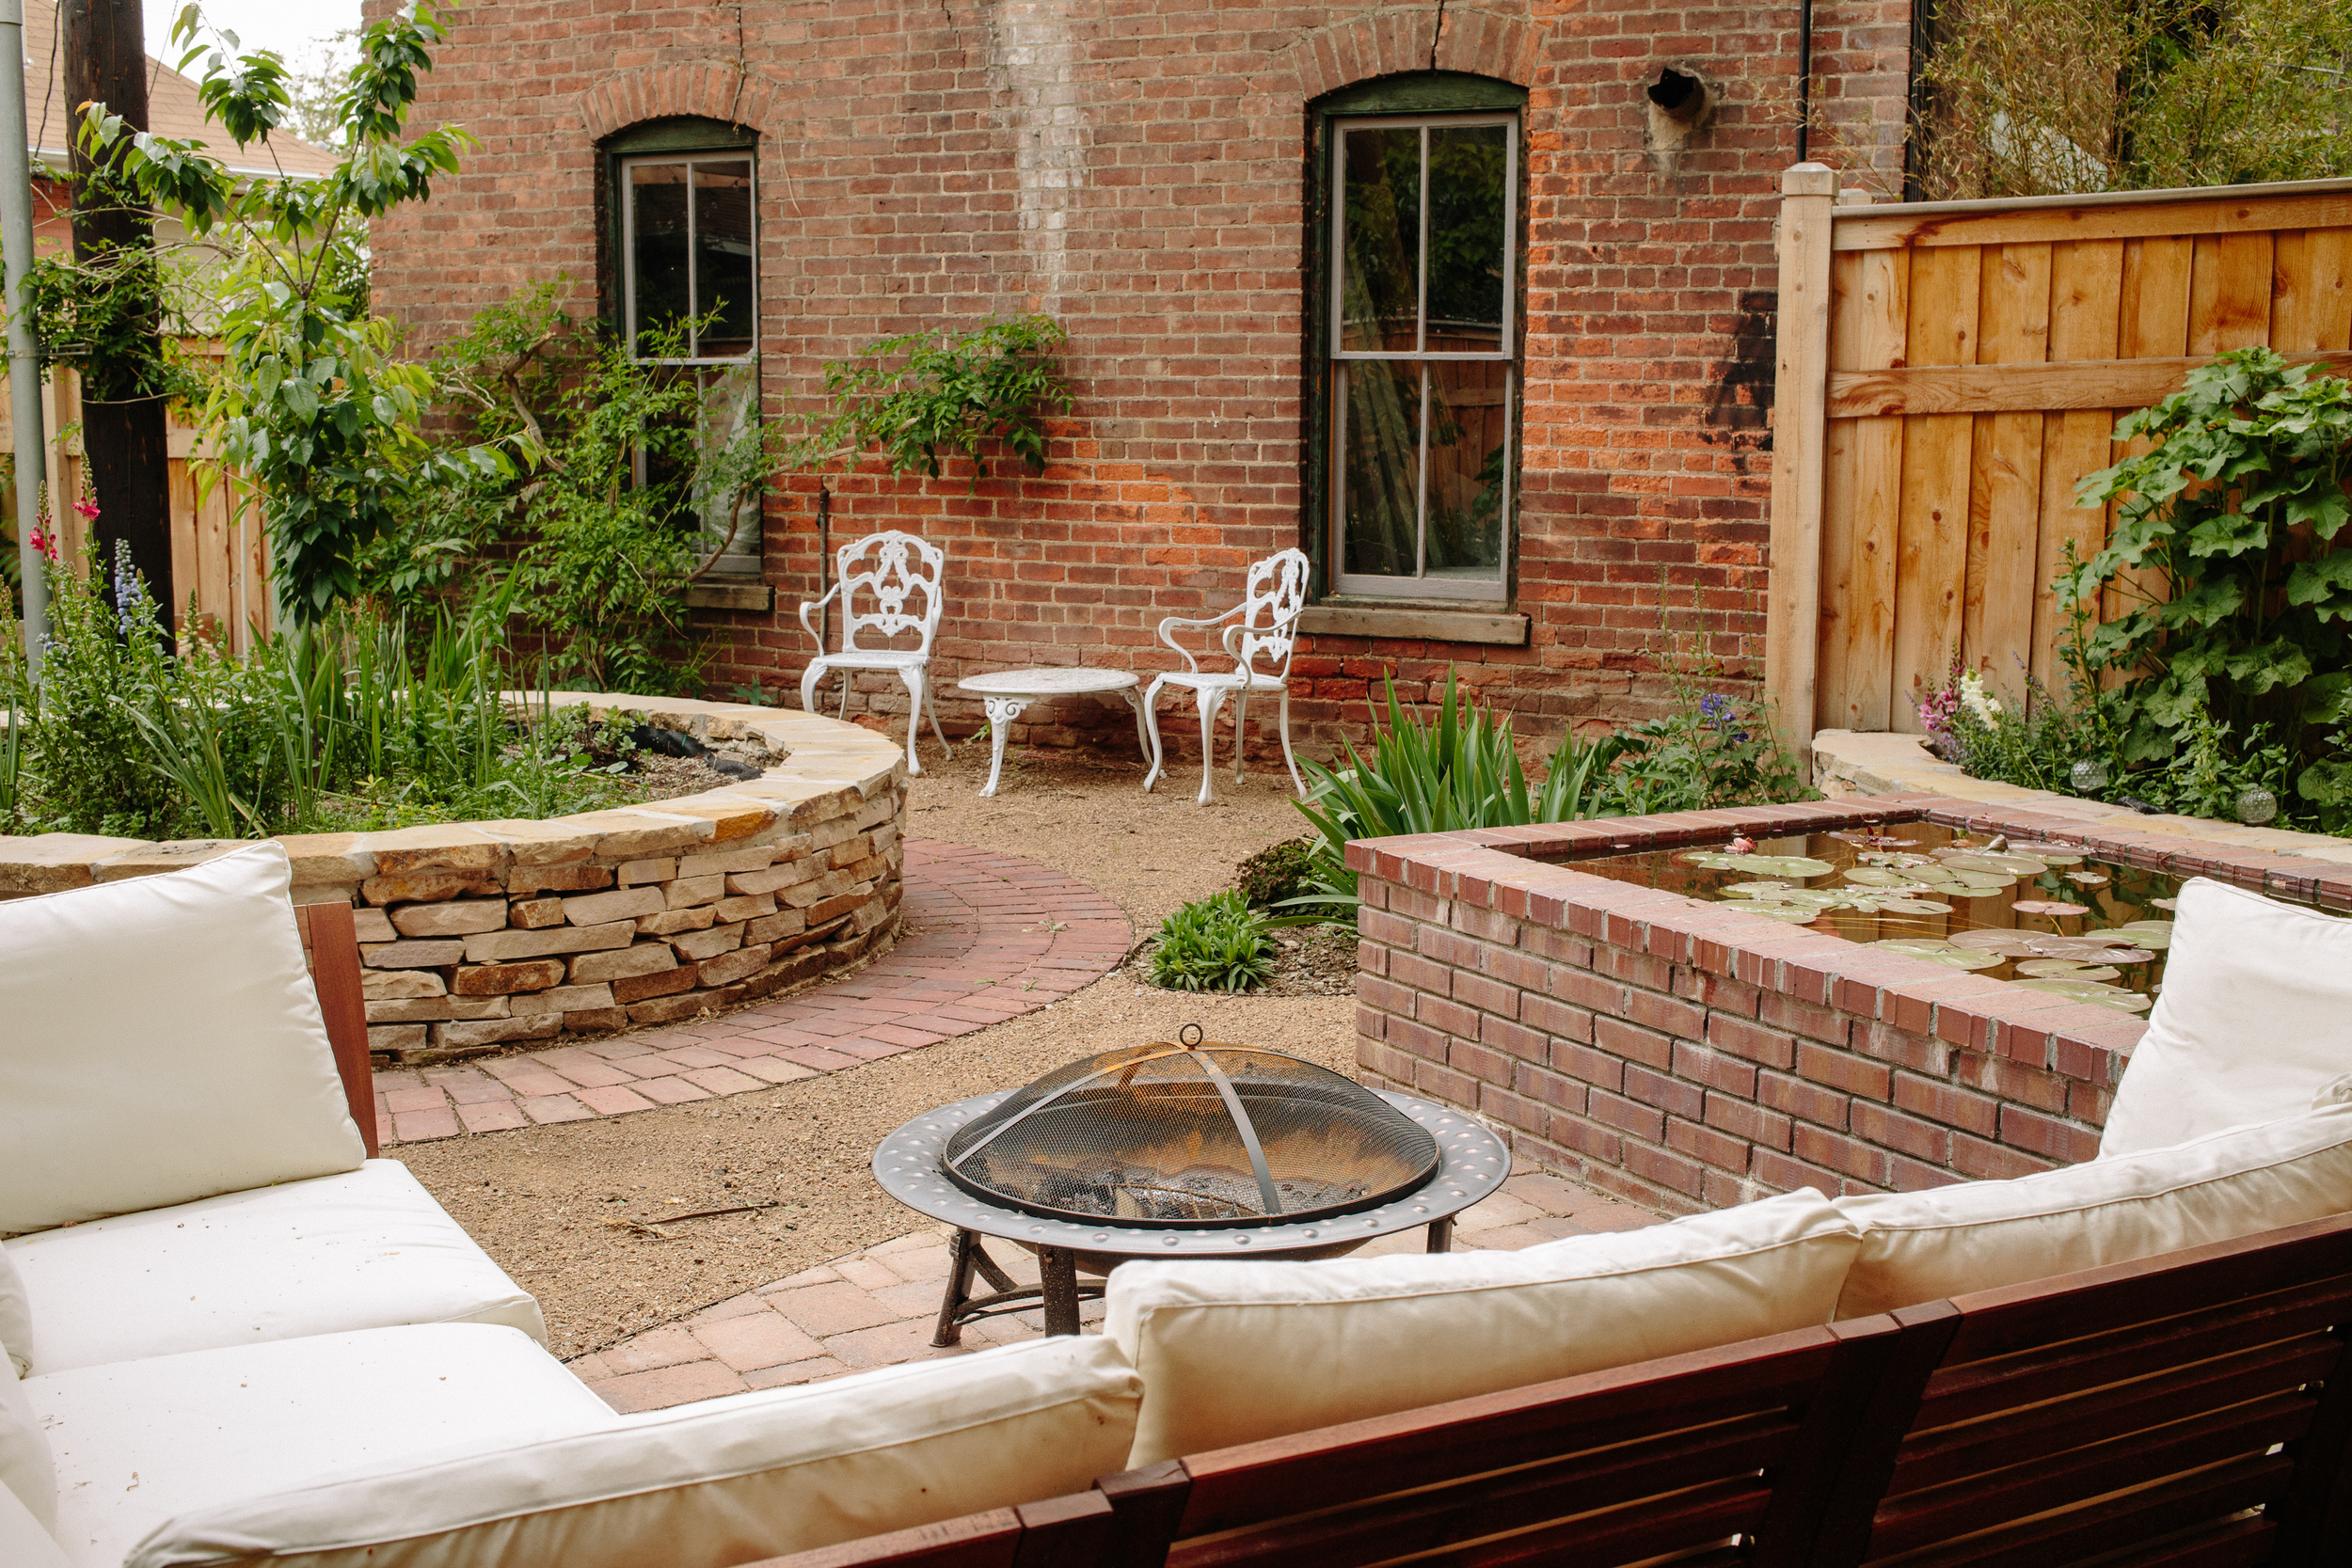 Hannah's backyard is a welcoming mix of English garden and fireside seating.